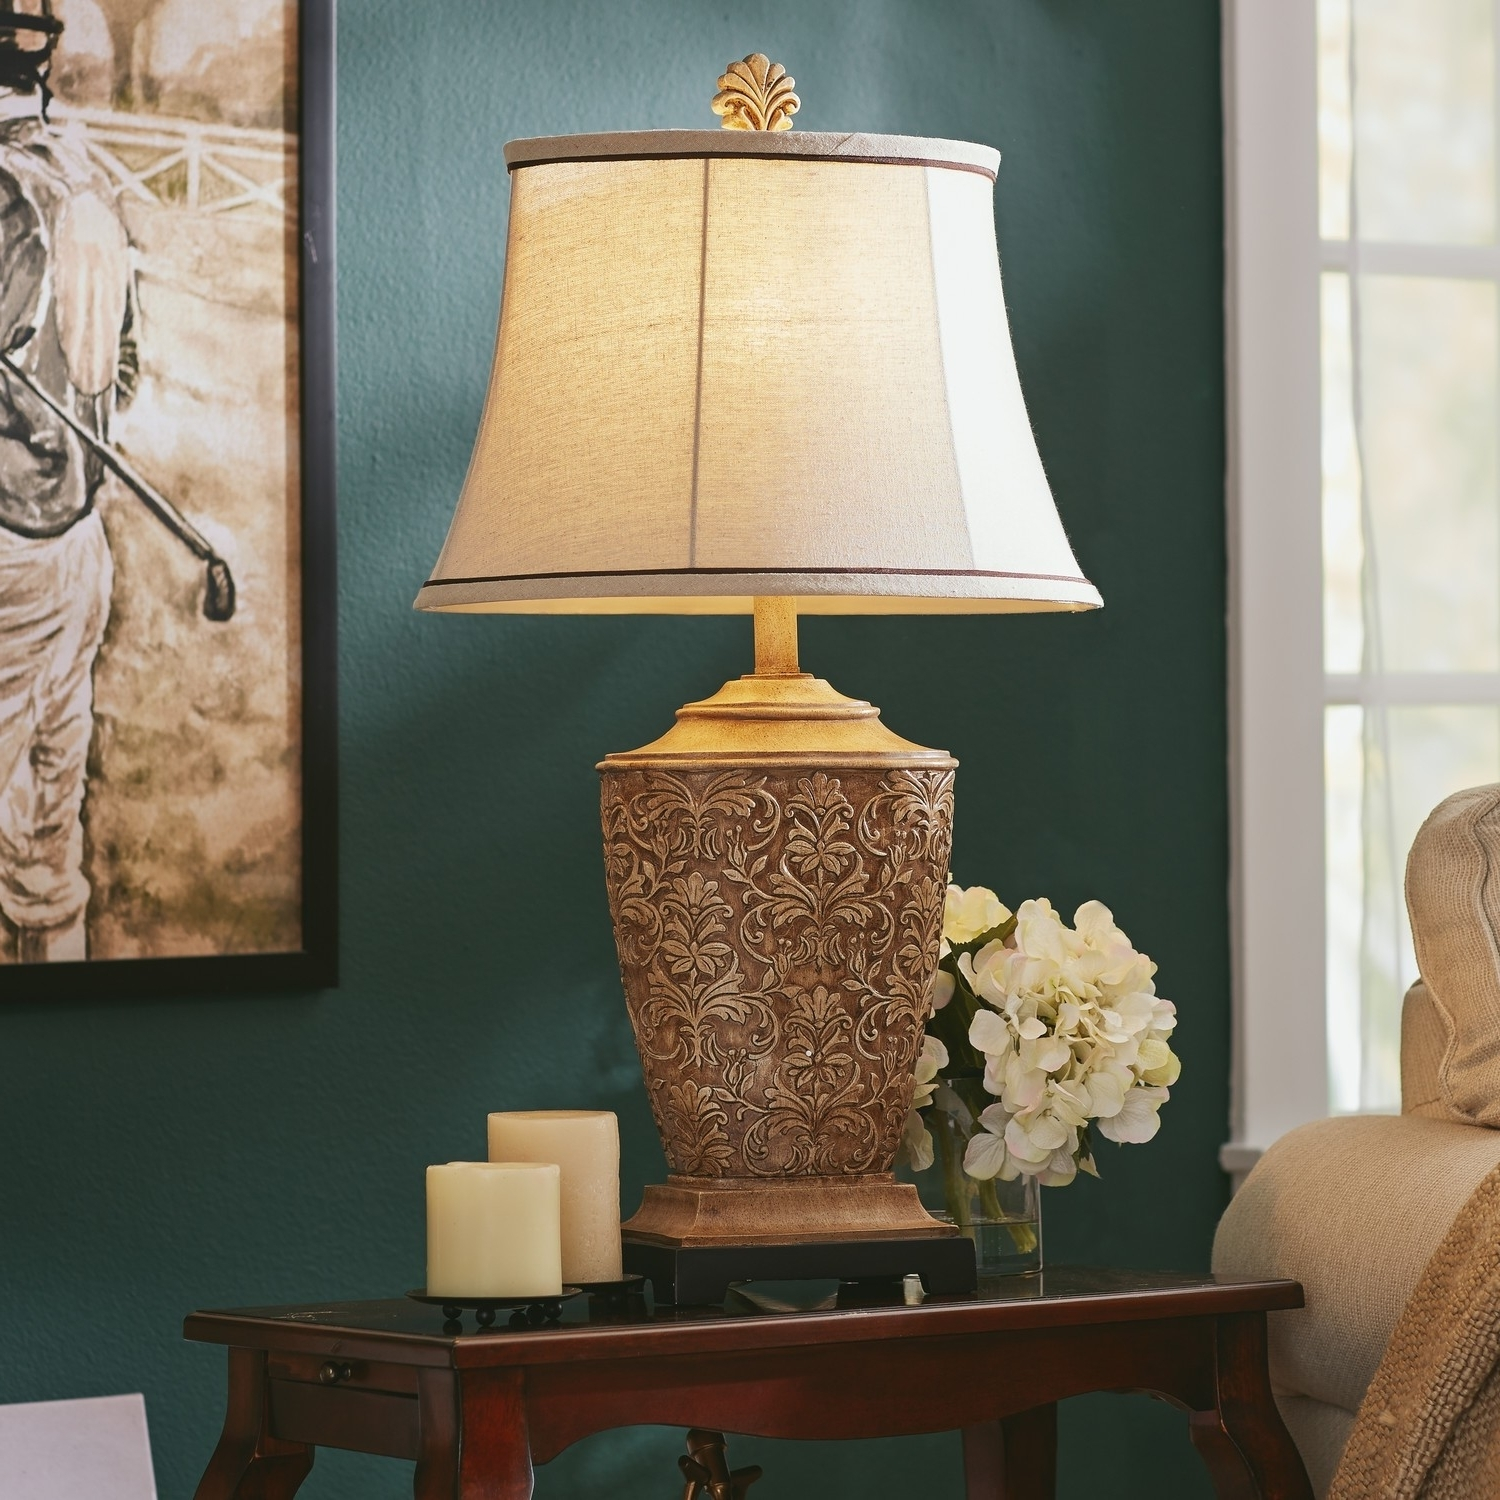 Table Lamps For Traditional Living Room Intended For Popular Silver Table Lamps Living Room Table Lamps For Living Room (View 5 of 15)